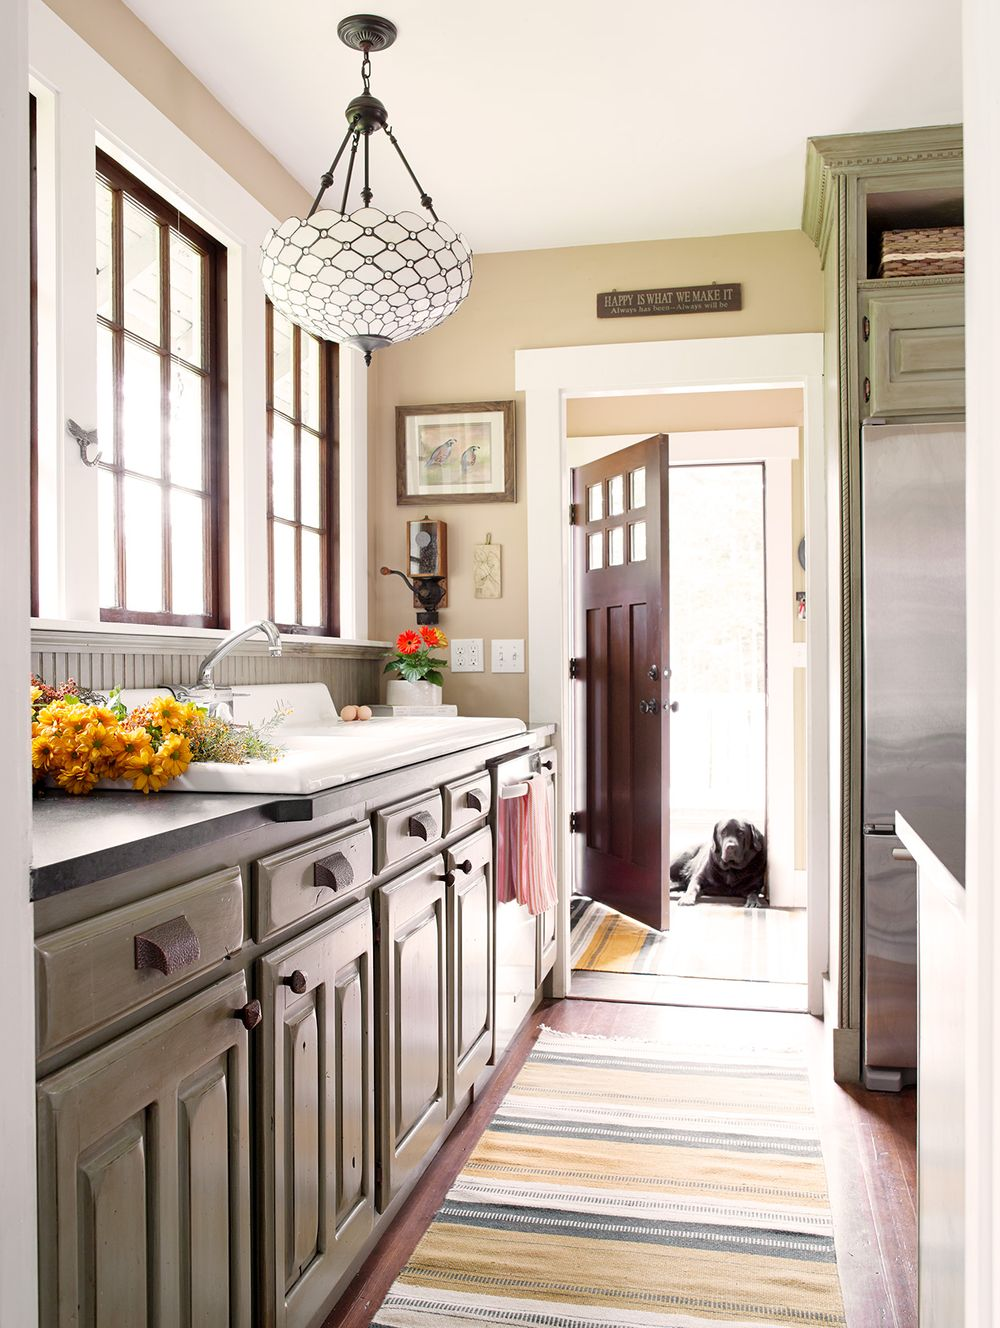 11 this-old-house-stone-kitchen.jpg